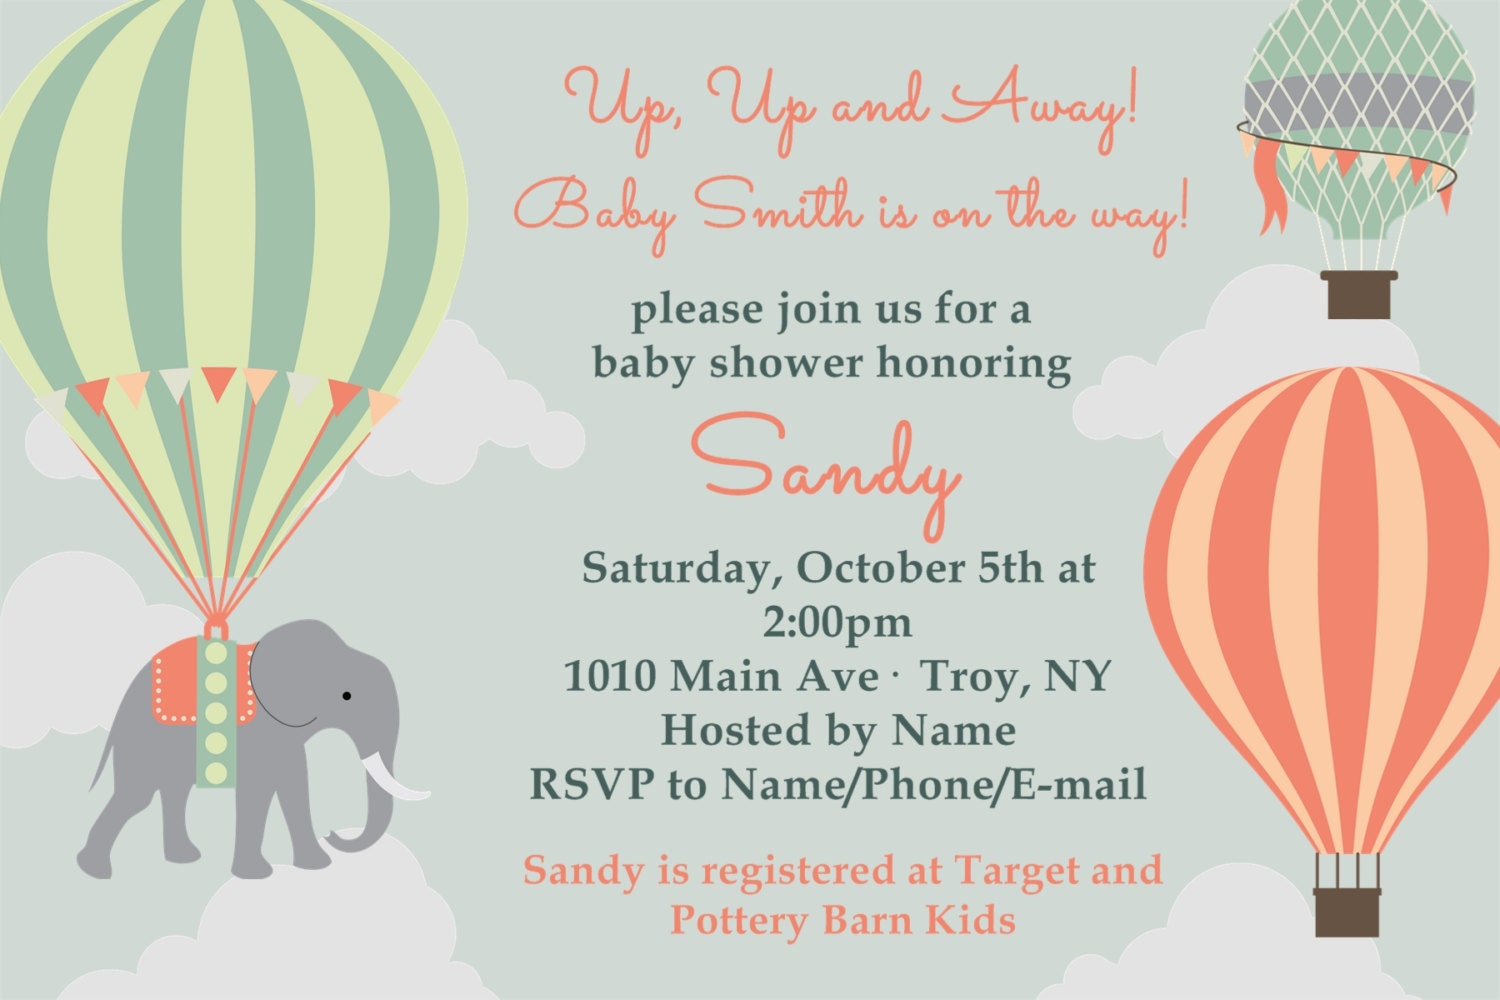 Hot Air Balloon Baby Shower Invitation: Printable 4x6 or 5x7